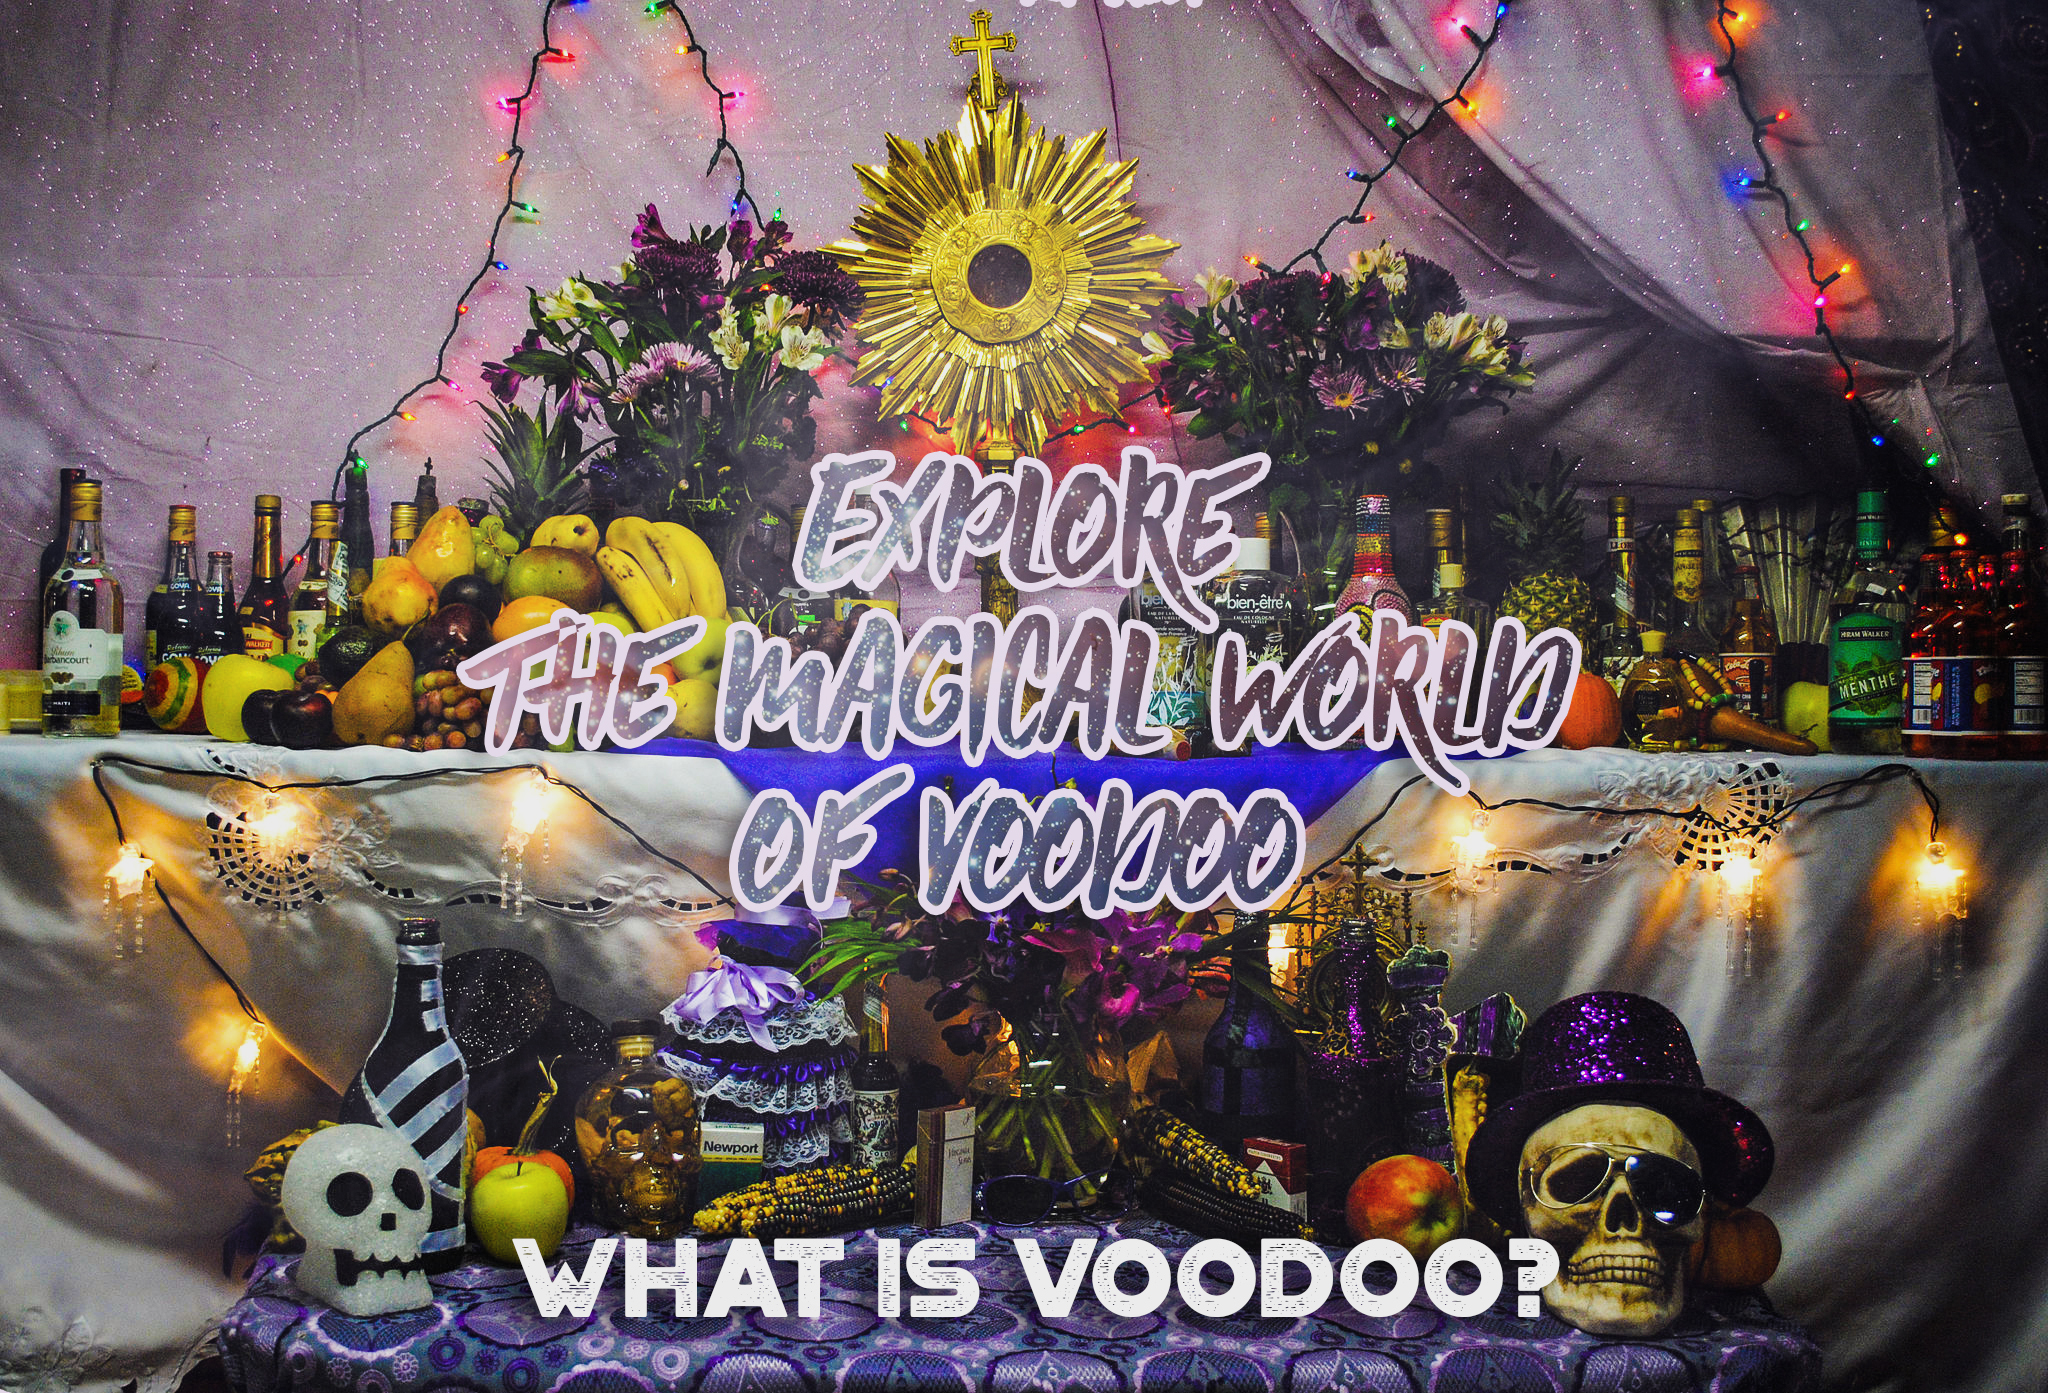 What Is Voodoo? Thoughts from a Voodoo Priest